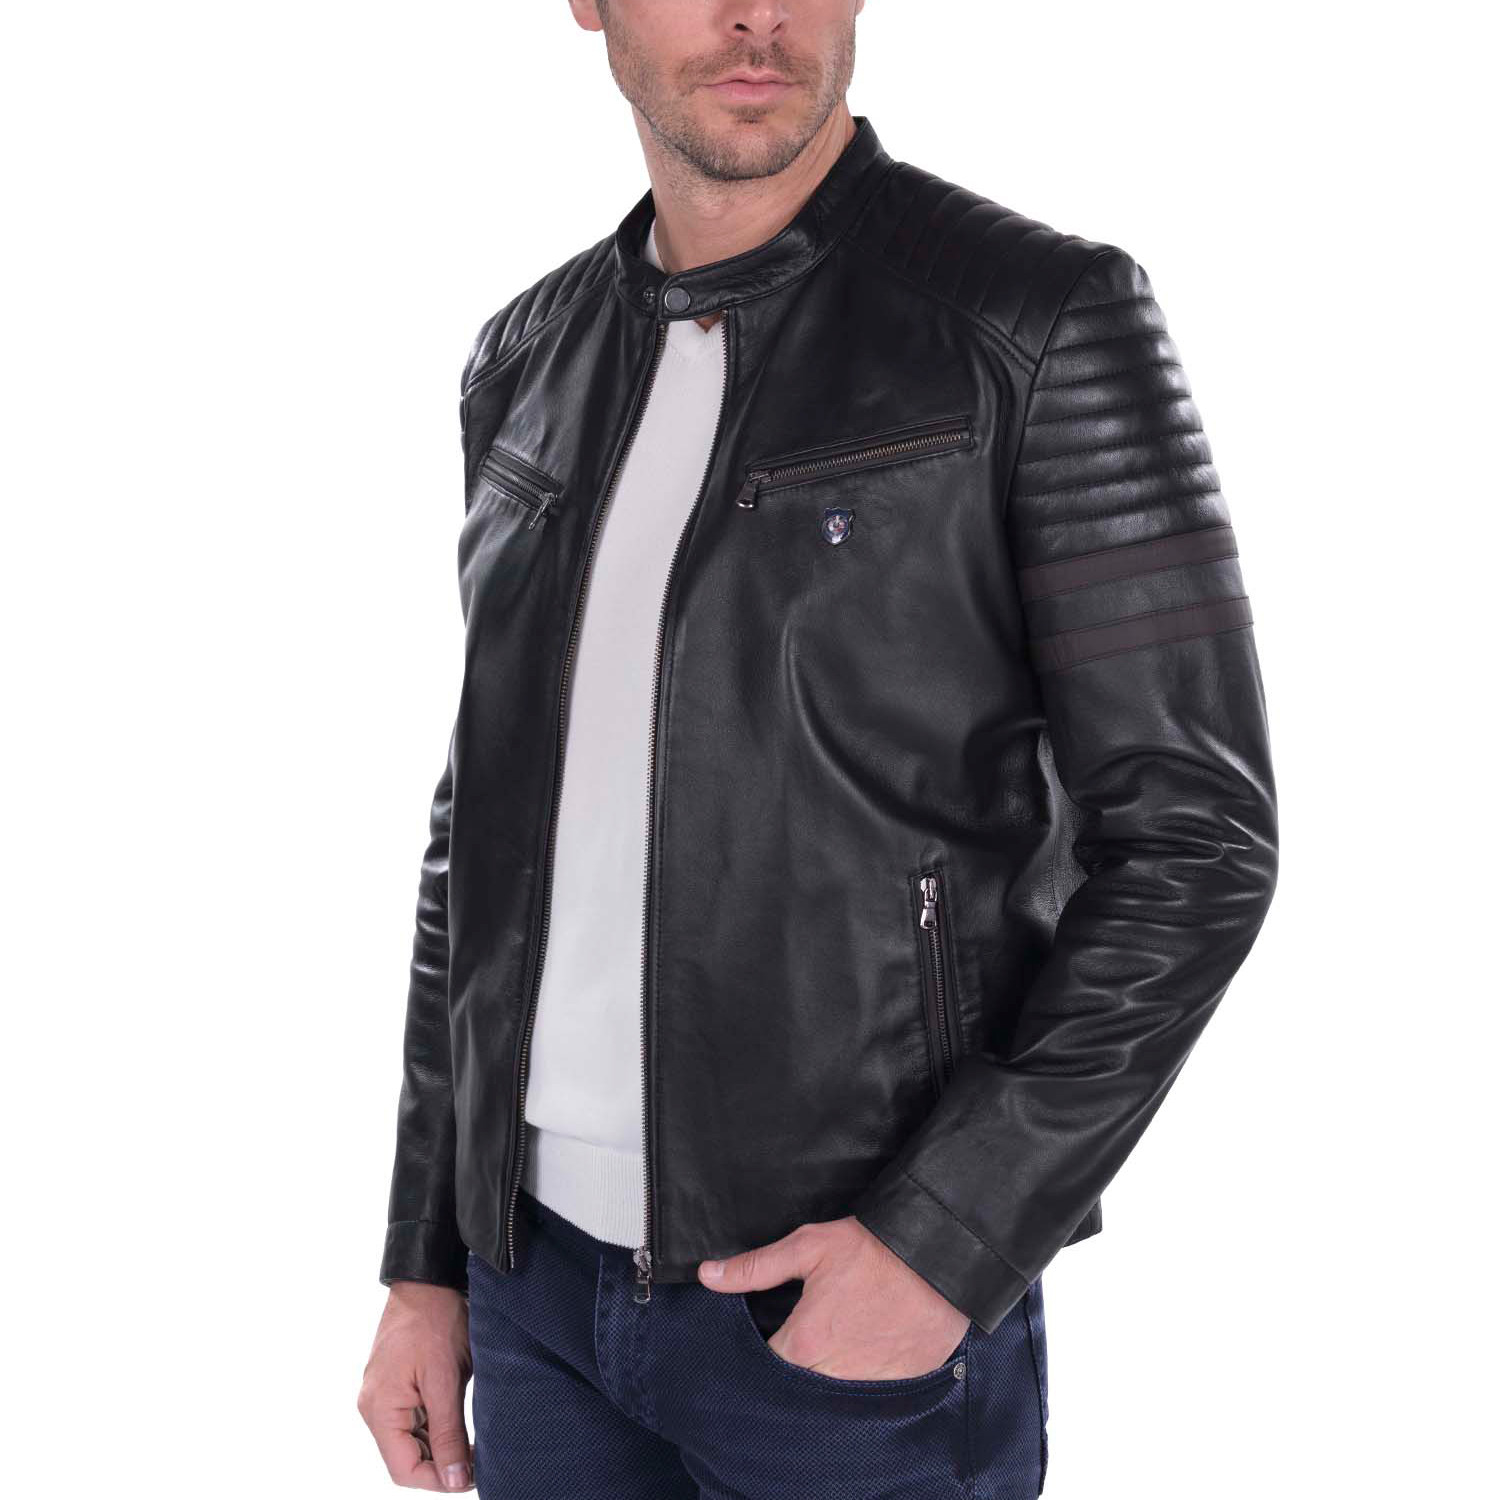 Making a leather jacket